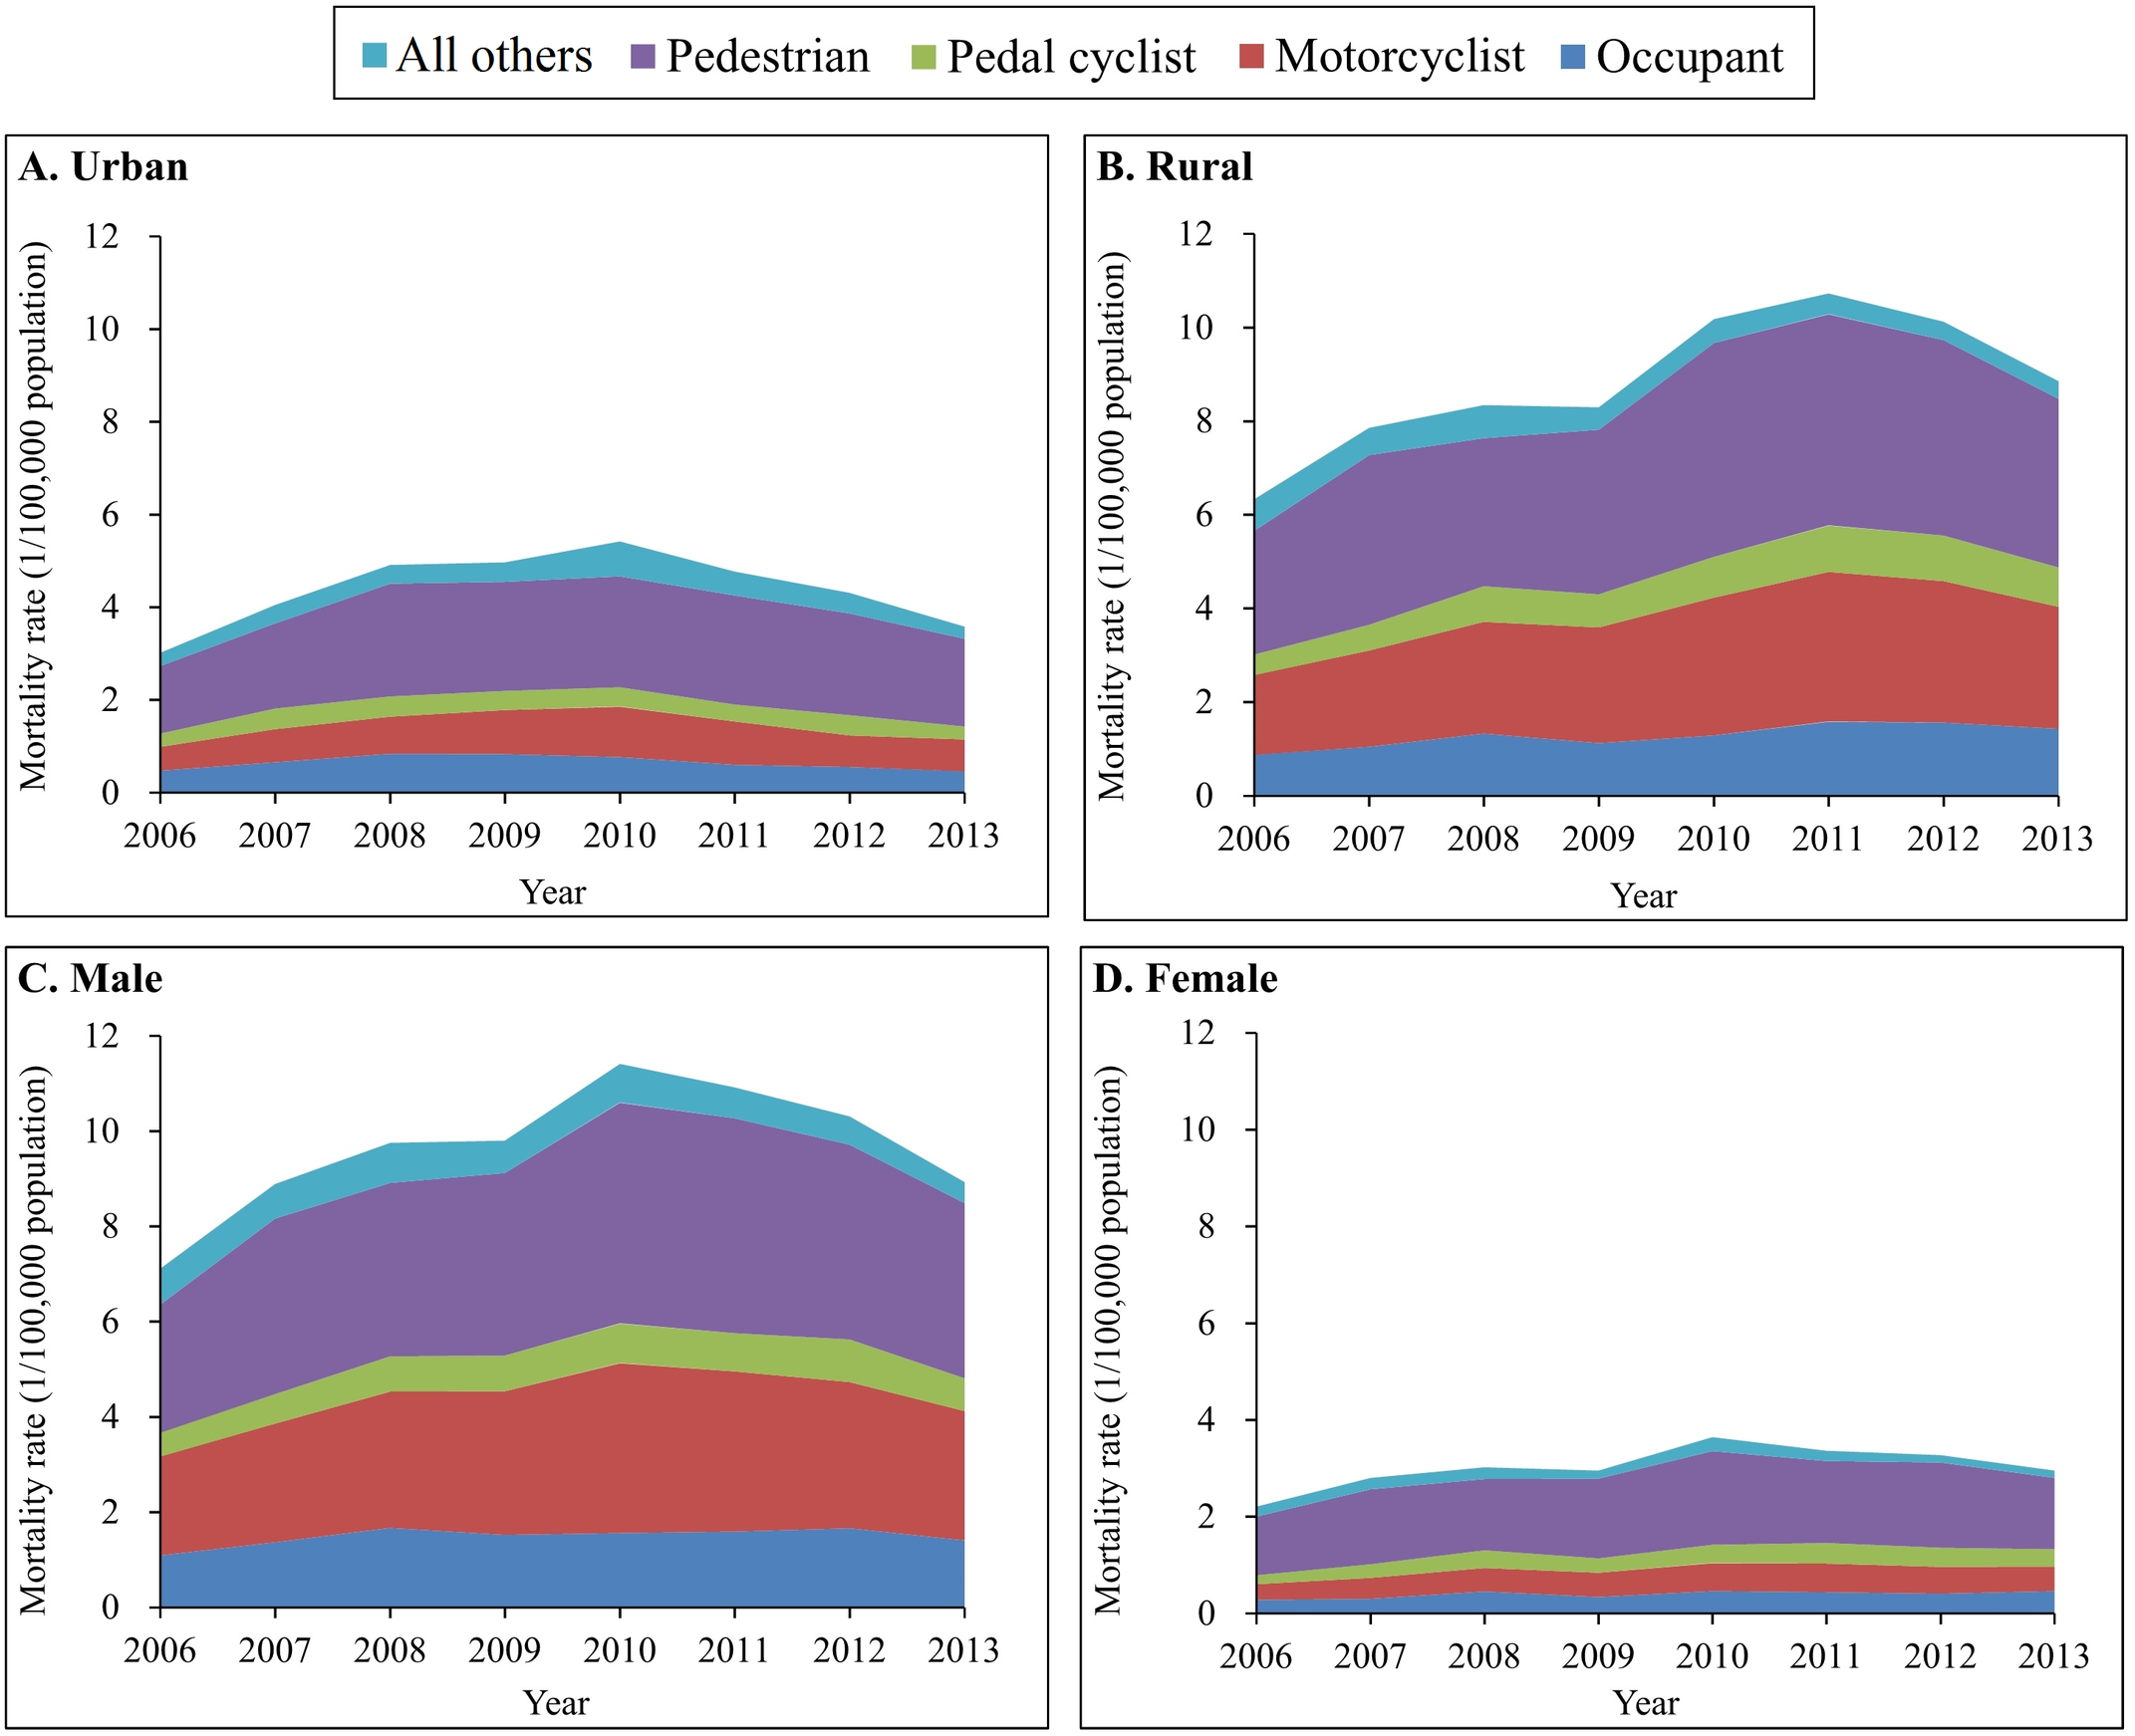 Mortality rates from traumatic brain injury due to motor vehicle crashes by urban/rural location, sex, and road user category (China, 2006–2013).